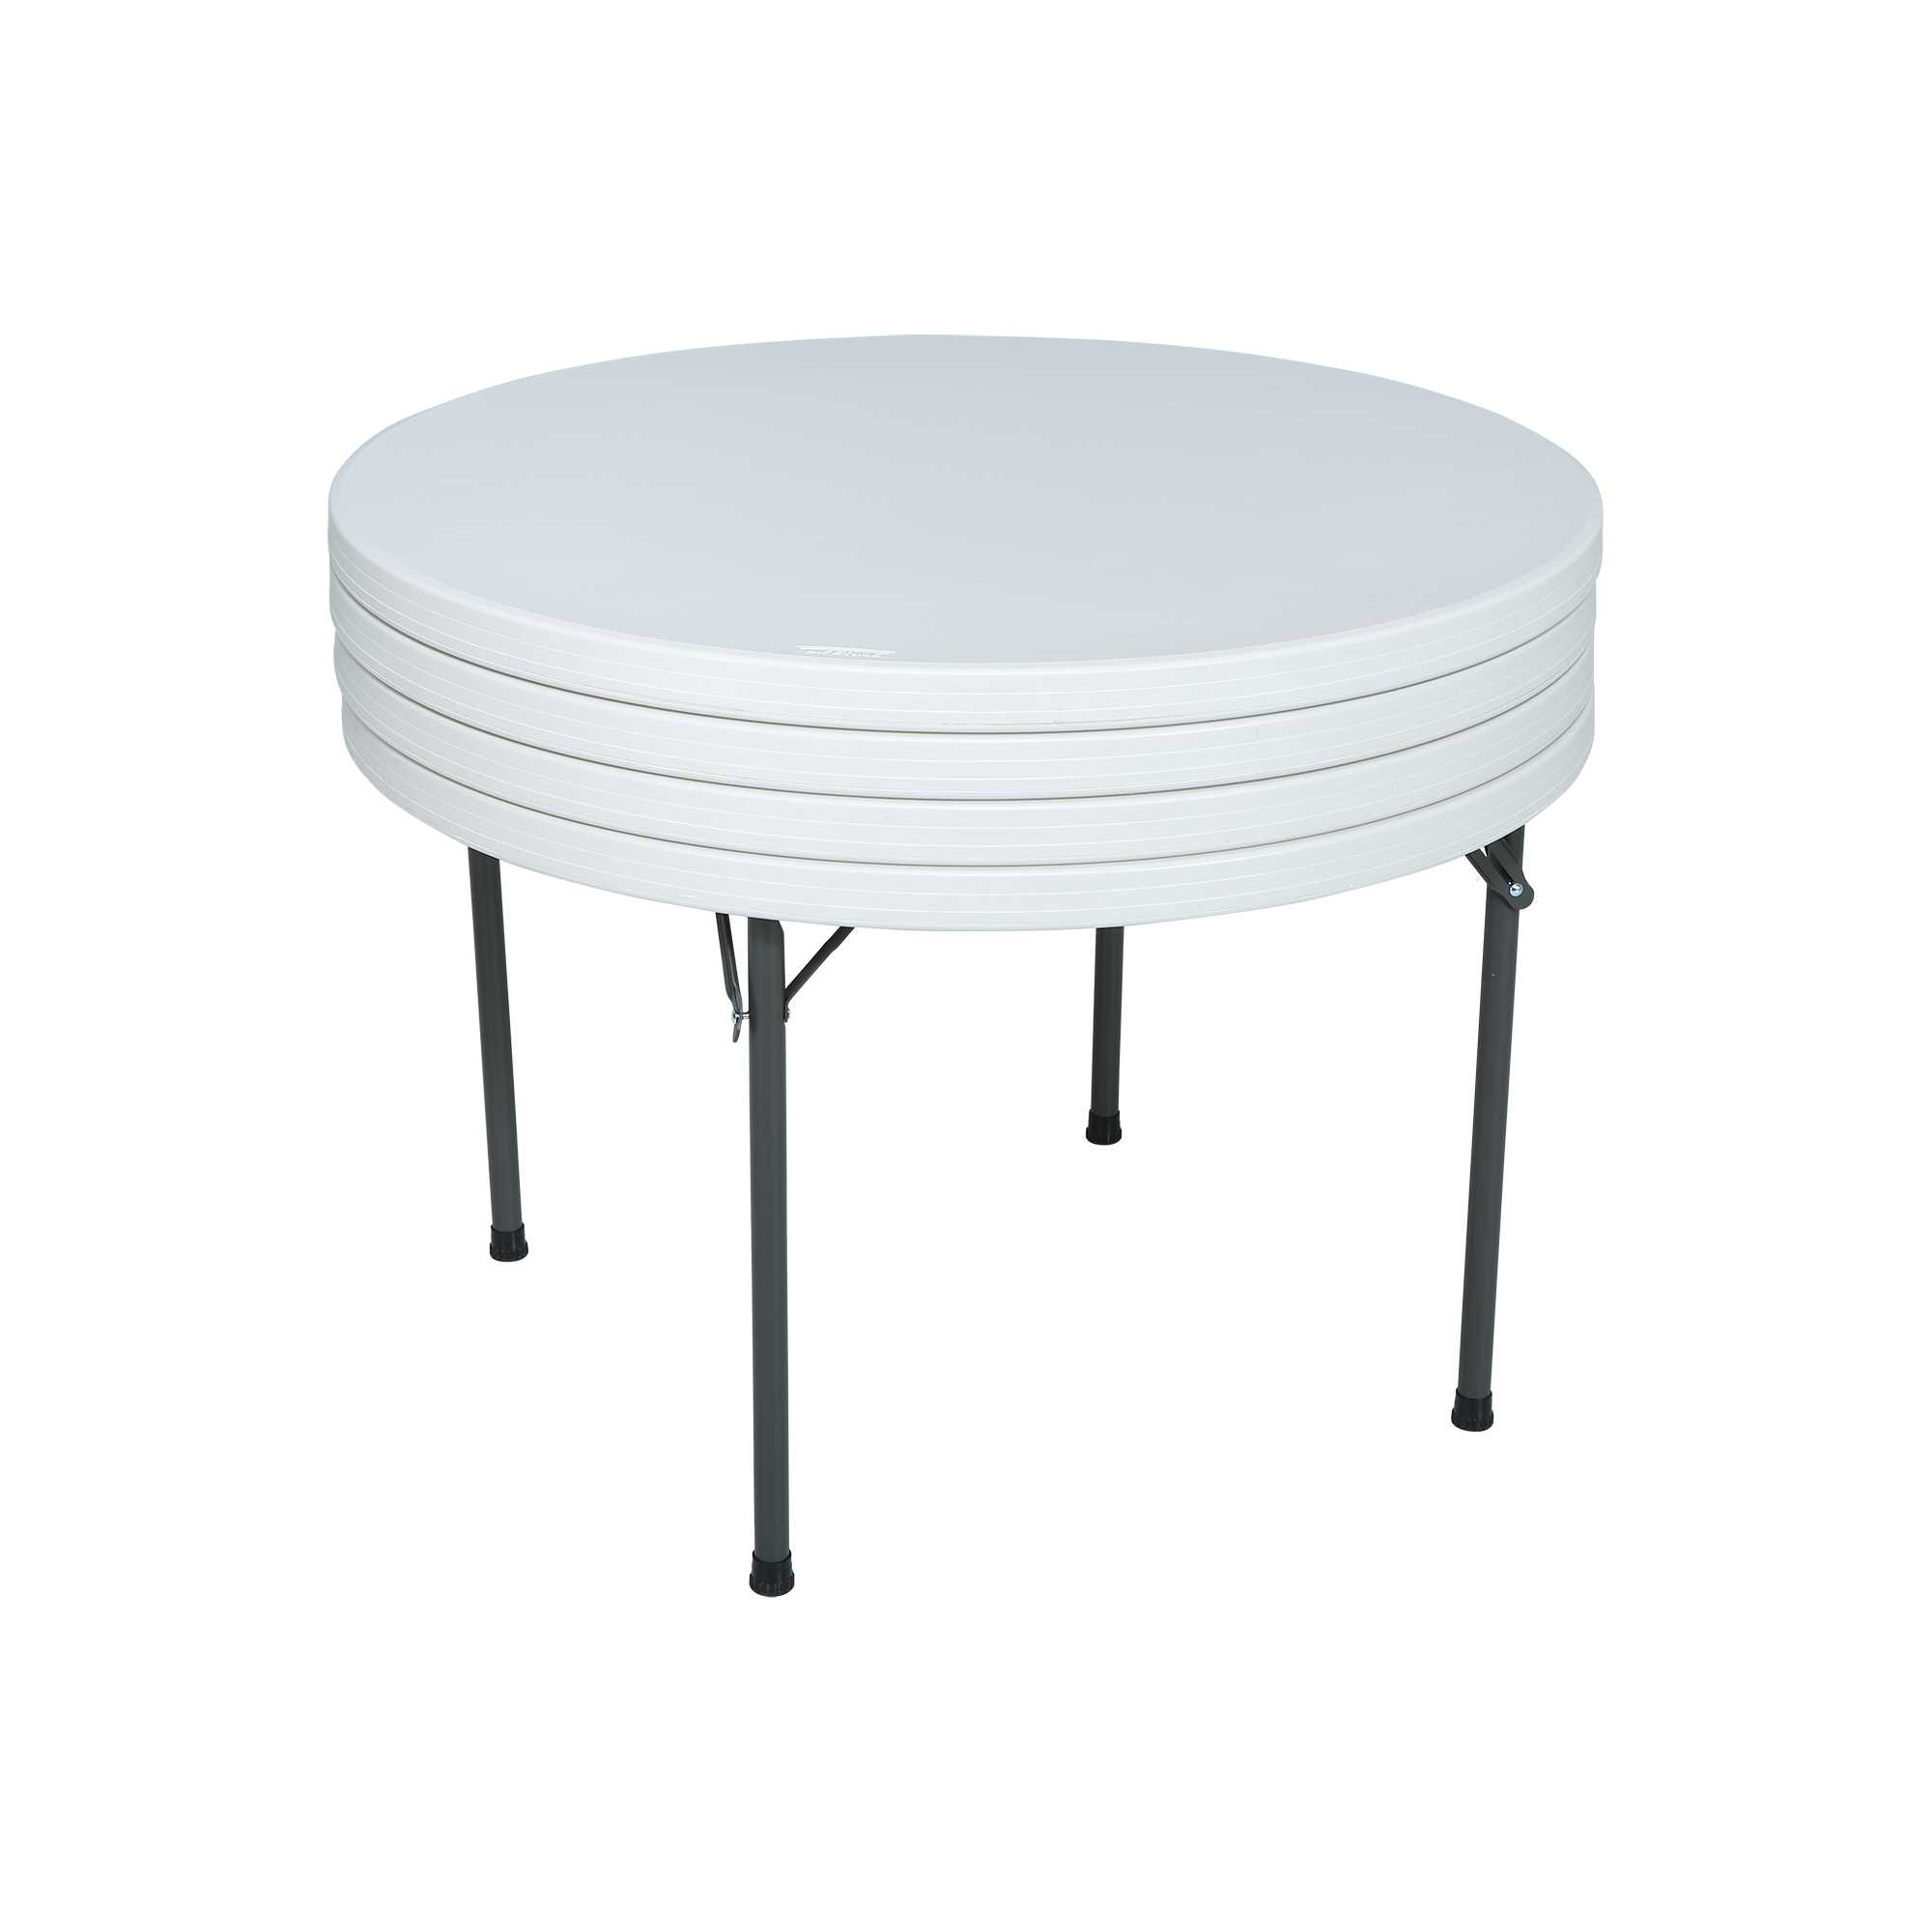 Table Ronde 6 Personnes Of Table Pliante Ronde Dia 122cm 4 6 Personnes Table